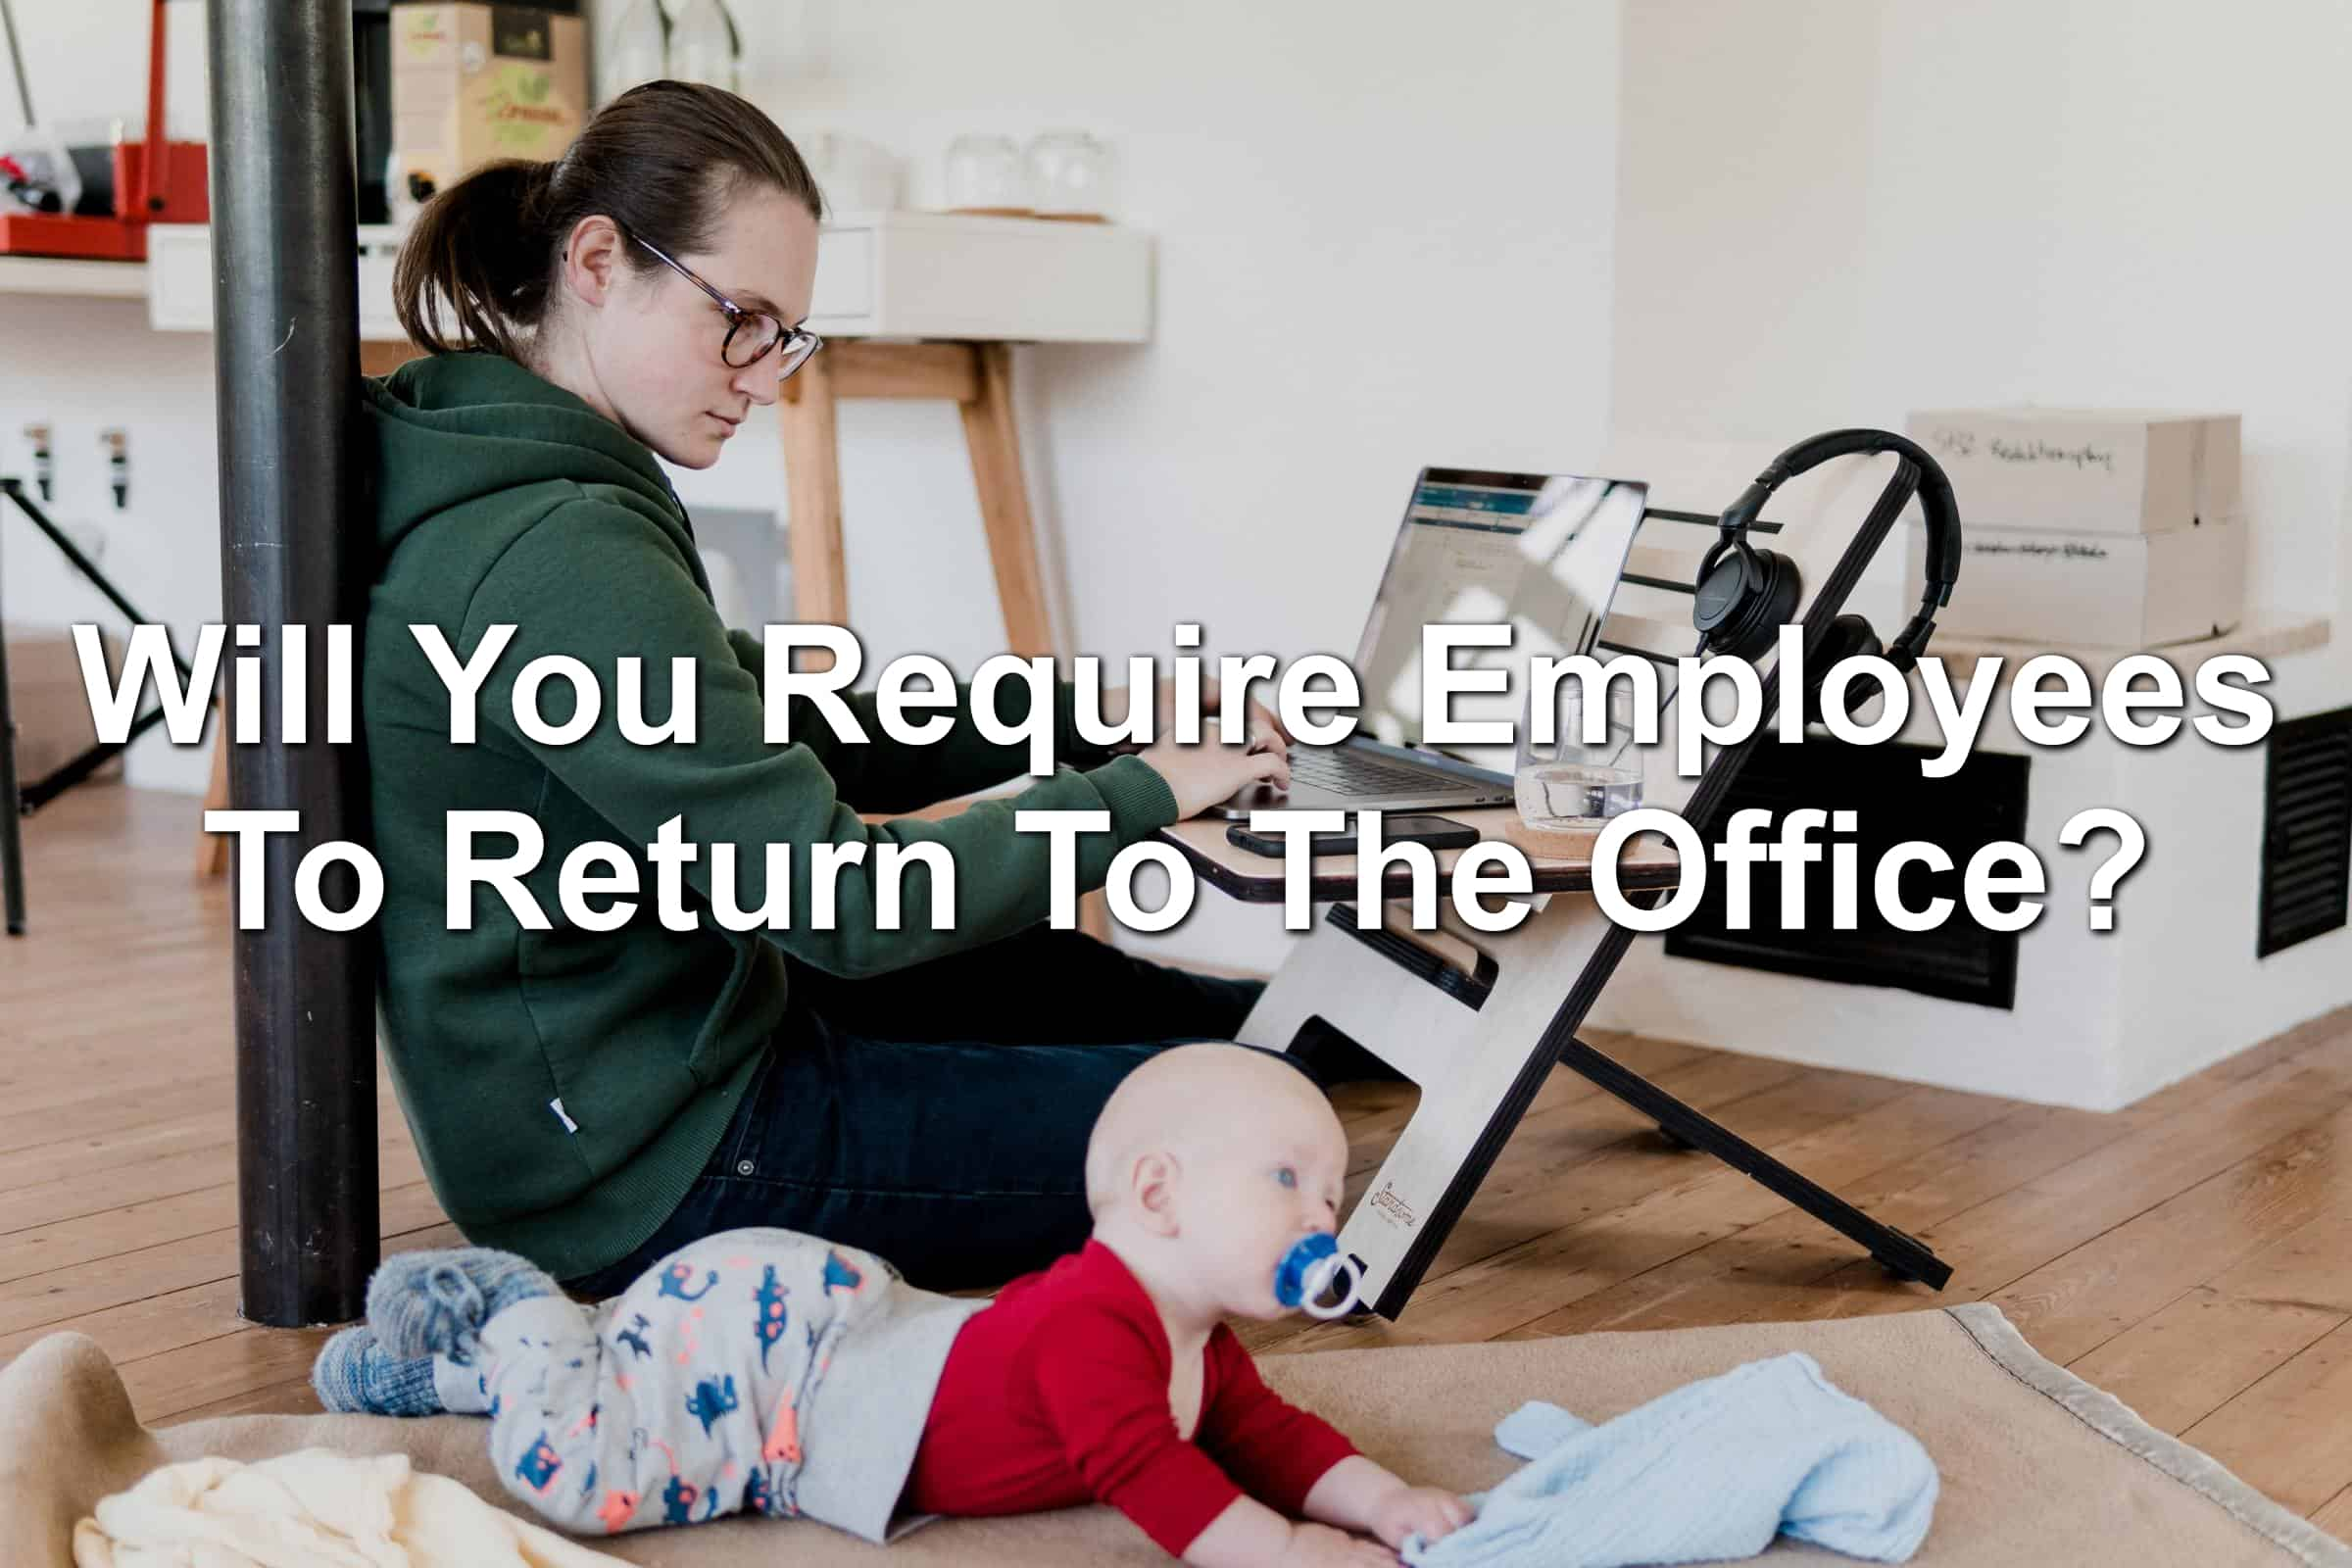 Woman working from home with a baby in the foreground.